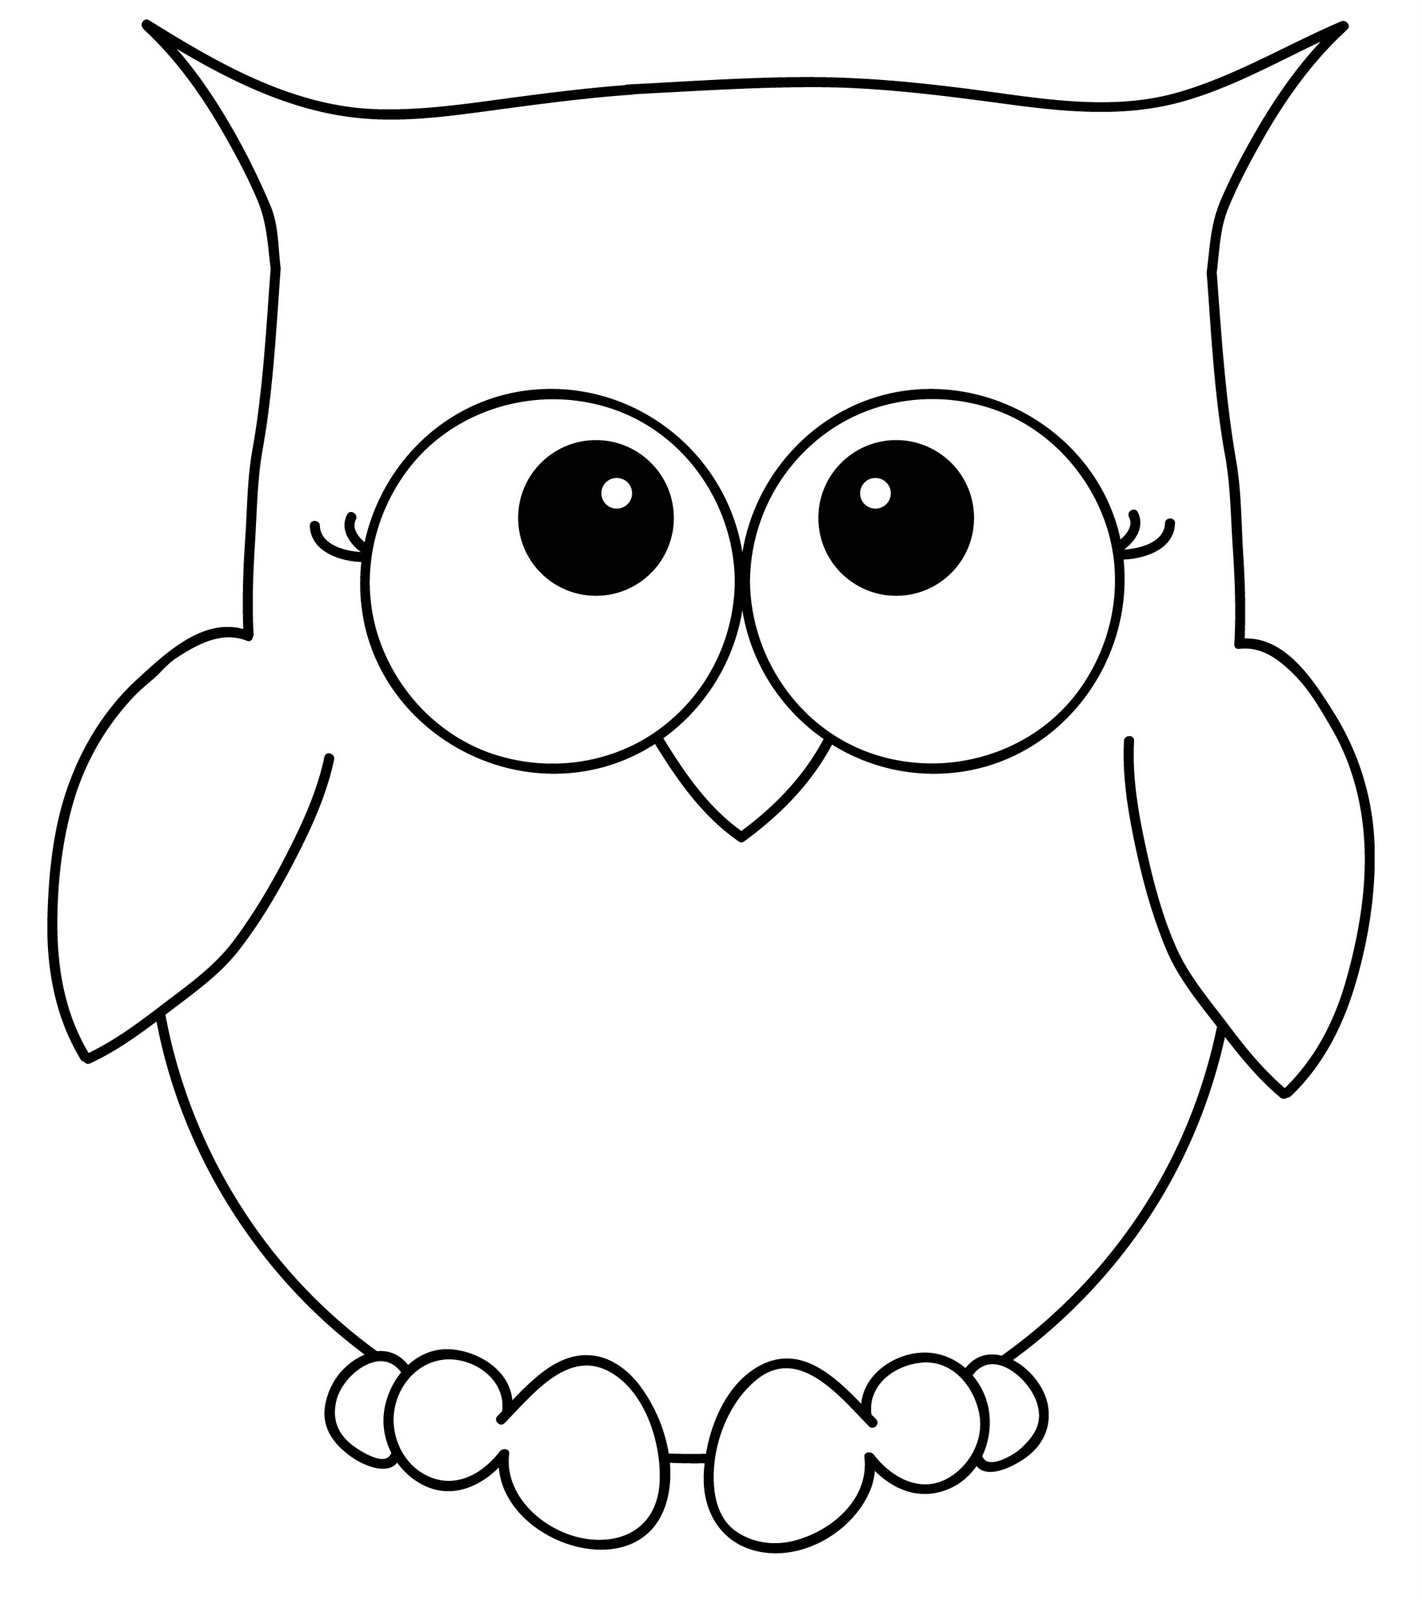 owl coloring images lost in paper scraps free digital owl day 2 owl coloring images